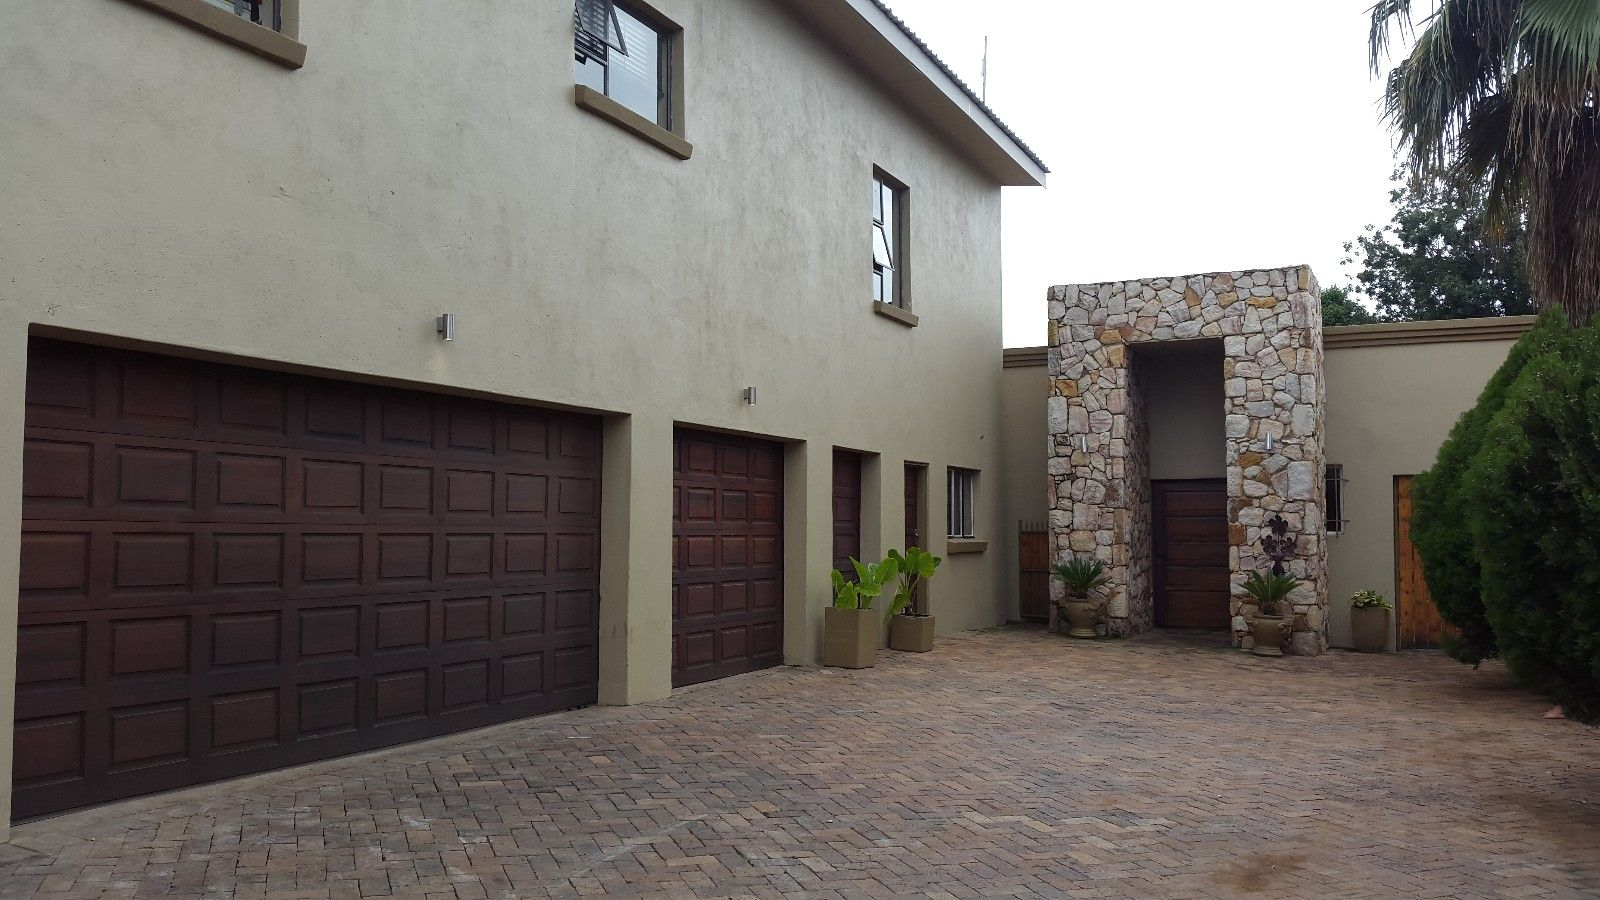 Potchefstroom Central property for sale. Ref No: 13451884. Picture no 1